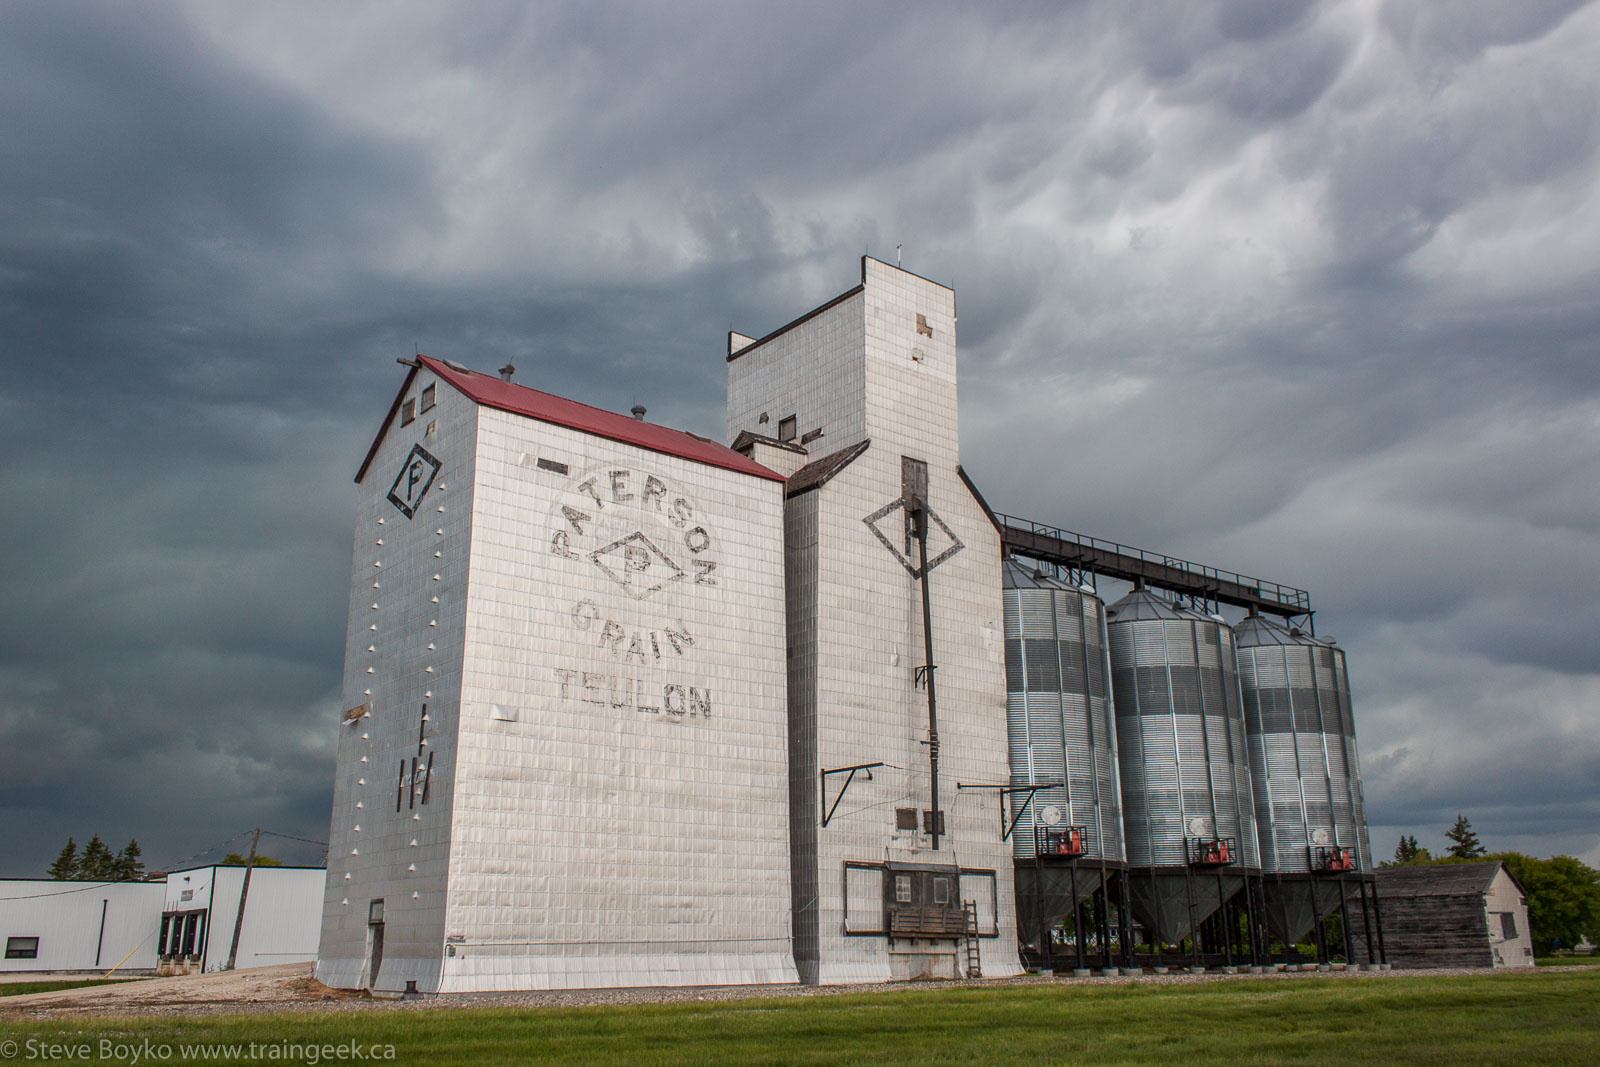 The Paterson grain elevator in Teulon, MB 2014/06/21